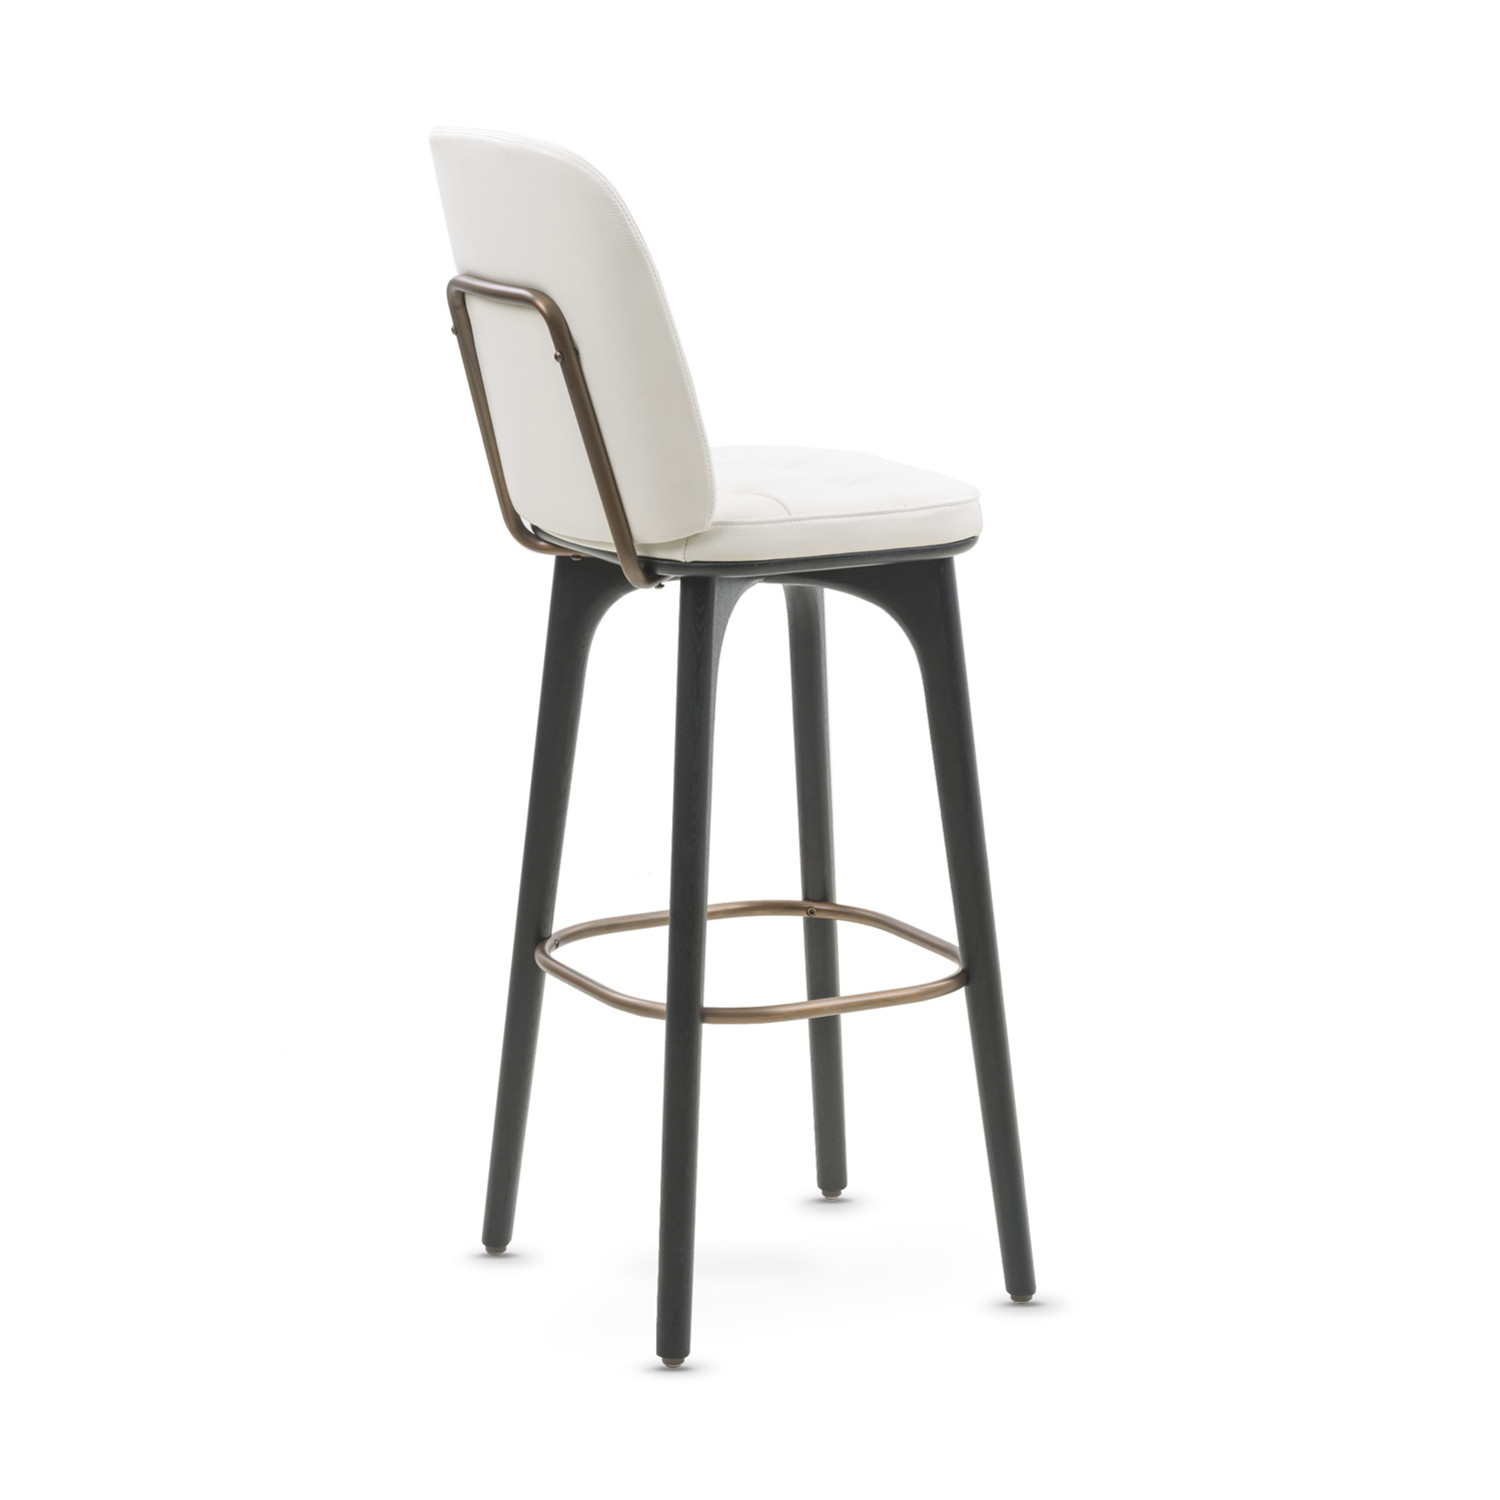 Utility Bar Stool with Backrest White Leather Medium  : 2432ff83bbd6f26e9a2bc52c952b8c16large from www.touchofmodern.com size 1500 x 1500 jpeg 83kB